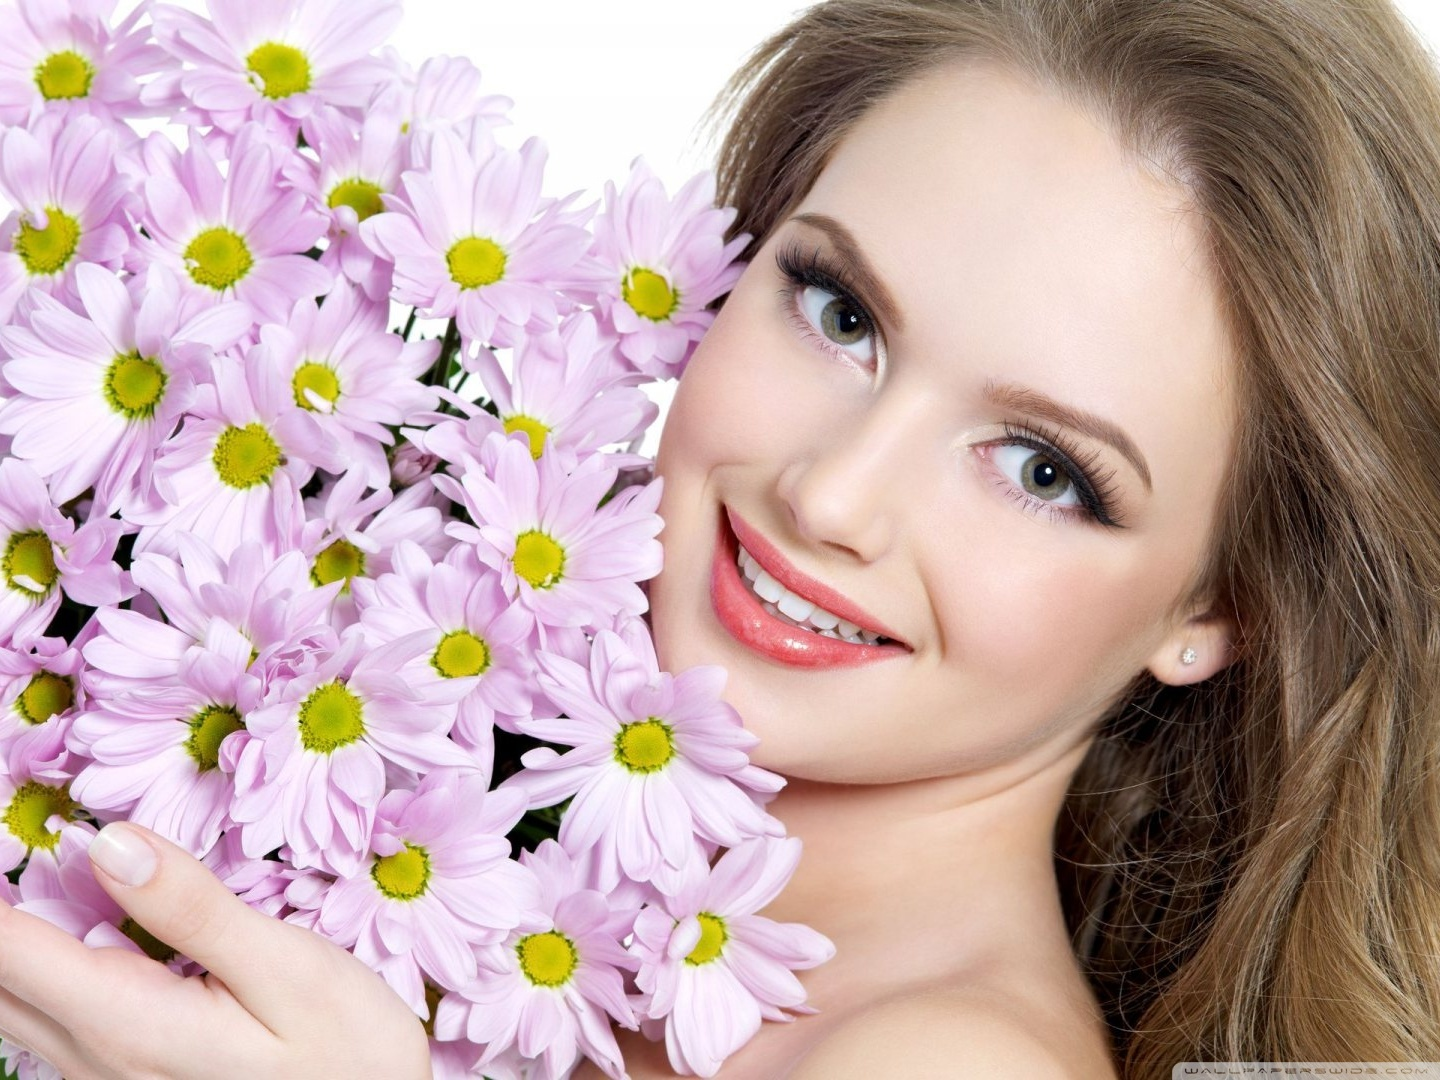 Standard - Most Beautiful Girl Smile , HD Wallpaper & Backgrounds